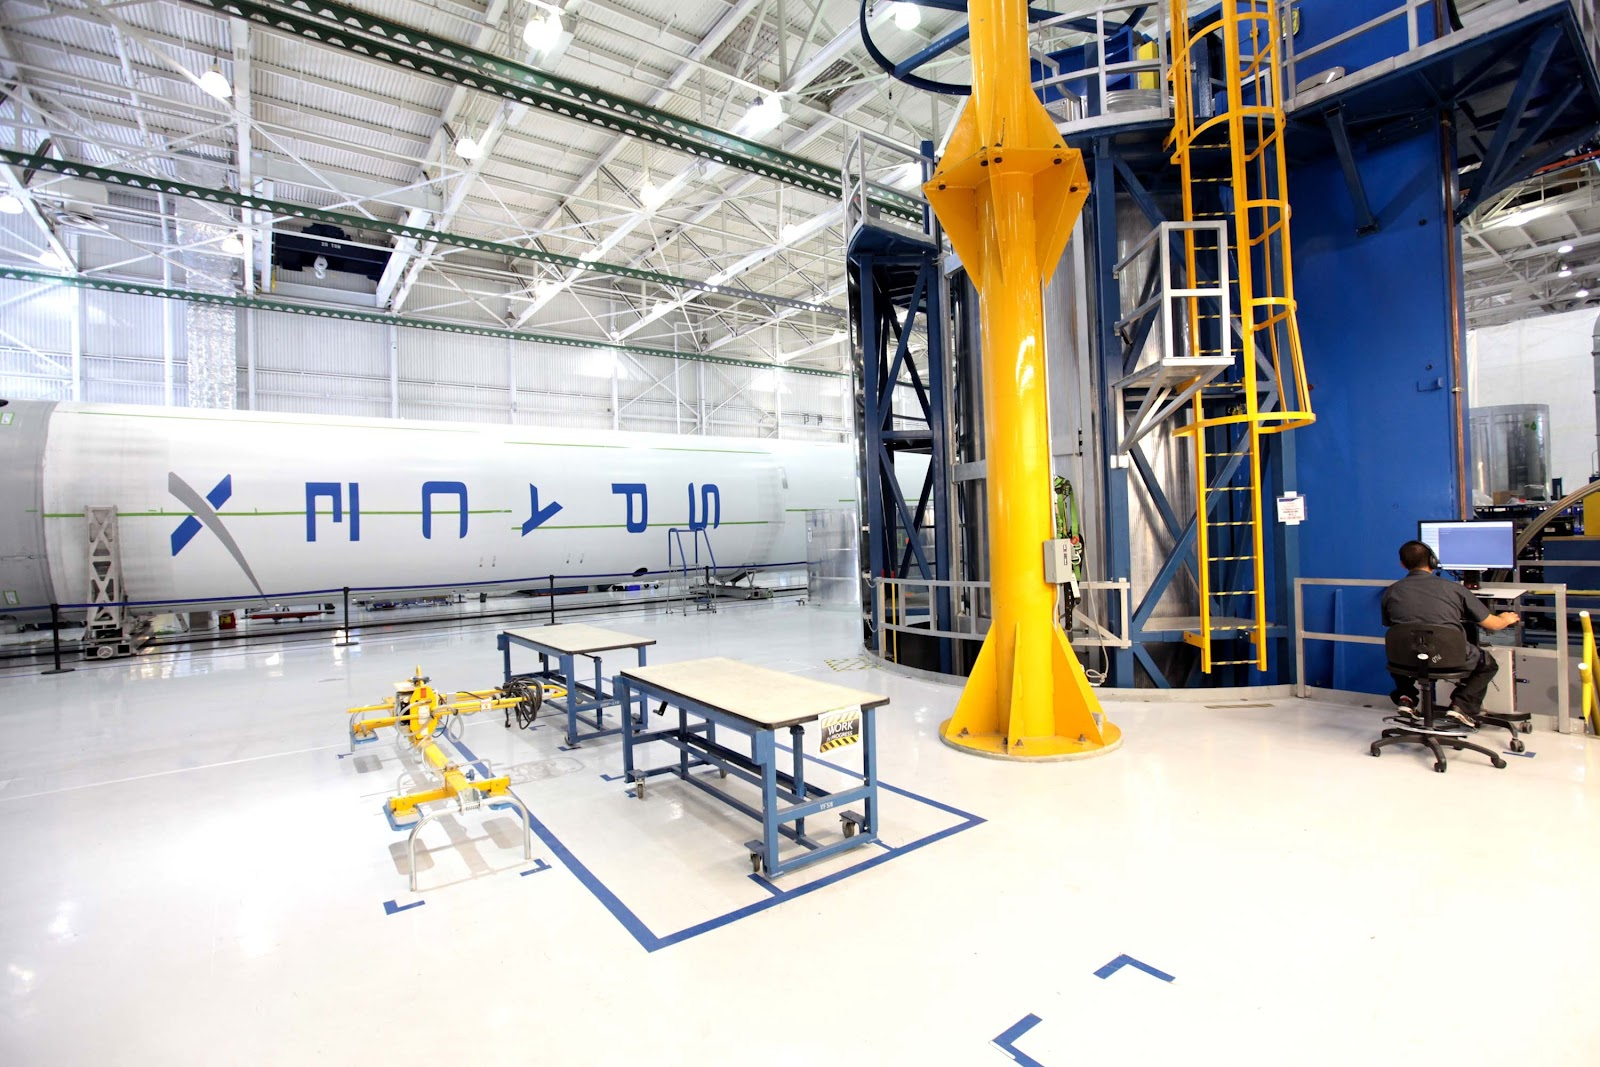 https://get.pxhere.com/photo/transportation-machine-factory-industry-electricity-rocket-energy-manufacturing-hangar-development-industries-cape-canaveral-rocket-science-spacex-893772.jpg